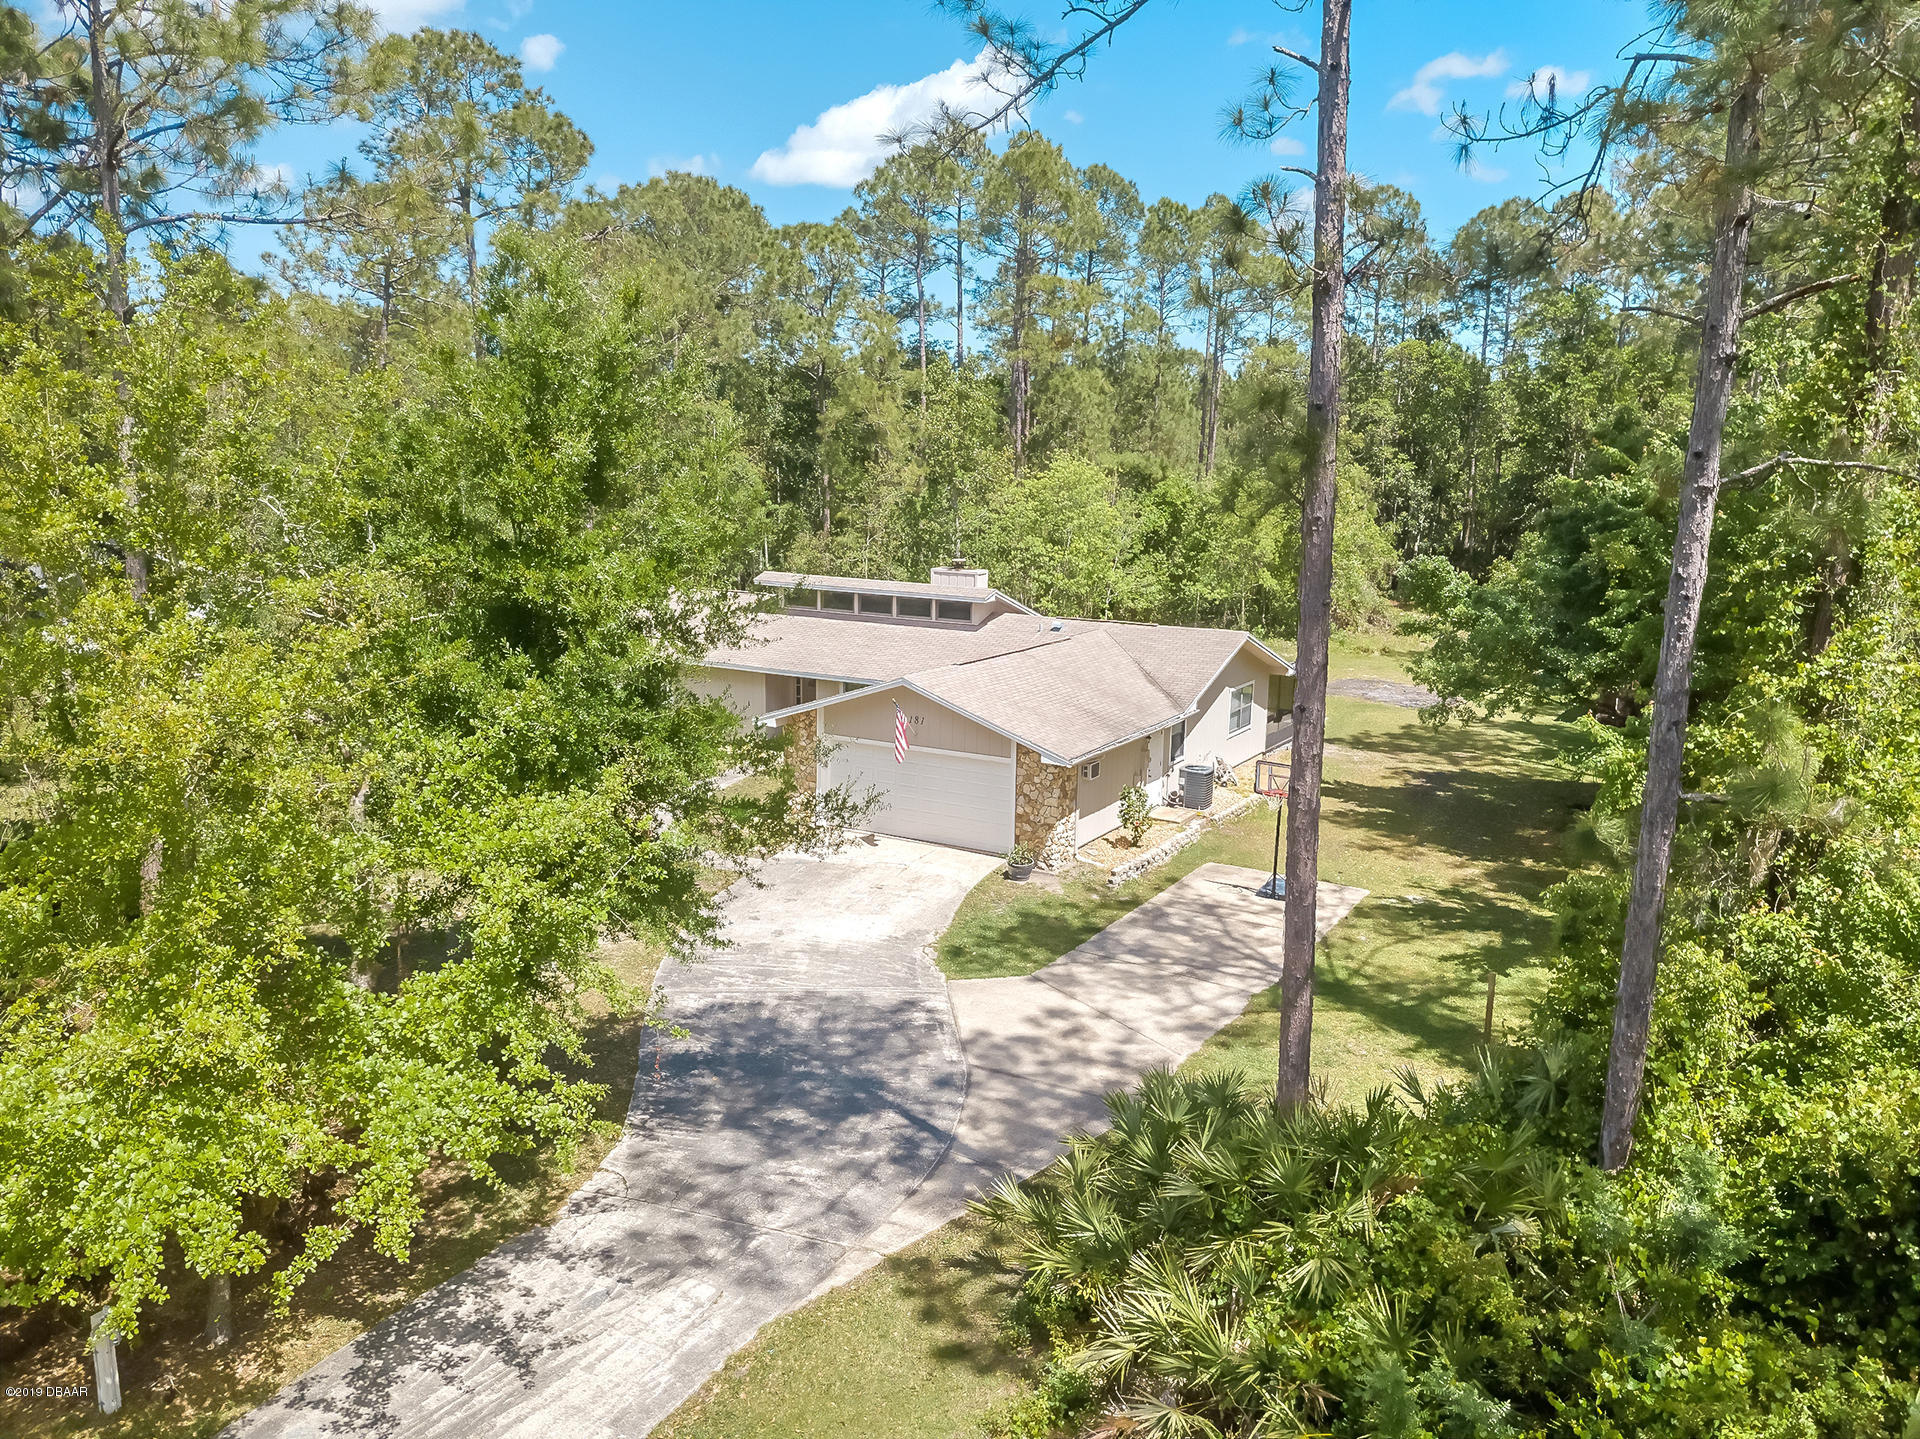 181 E Woodhaven Circle 32174 - One of Ormond Beach Homes for Sale